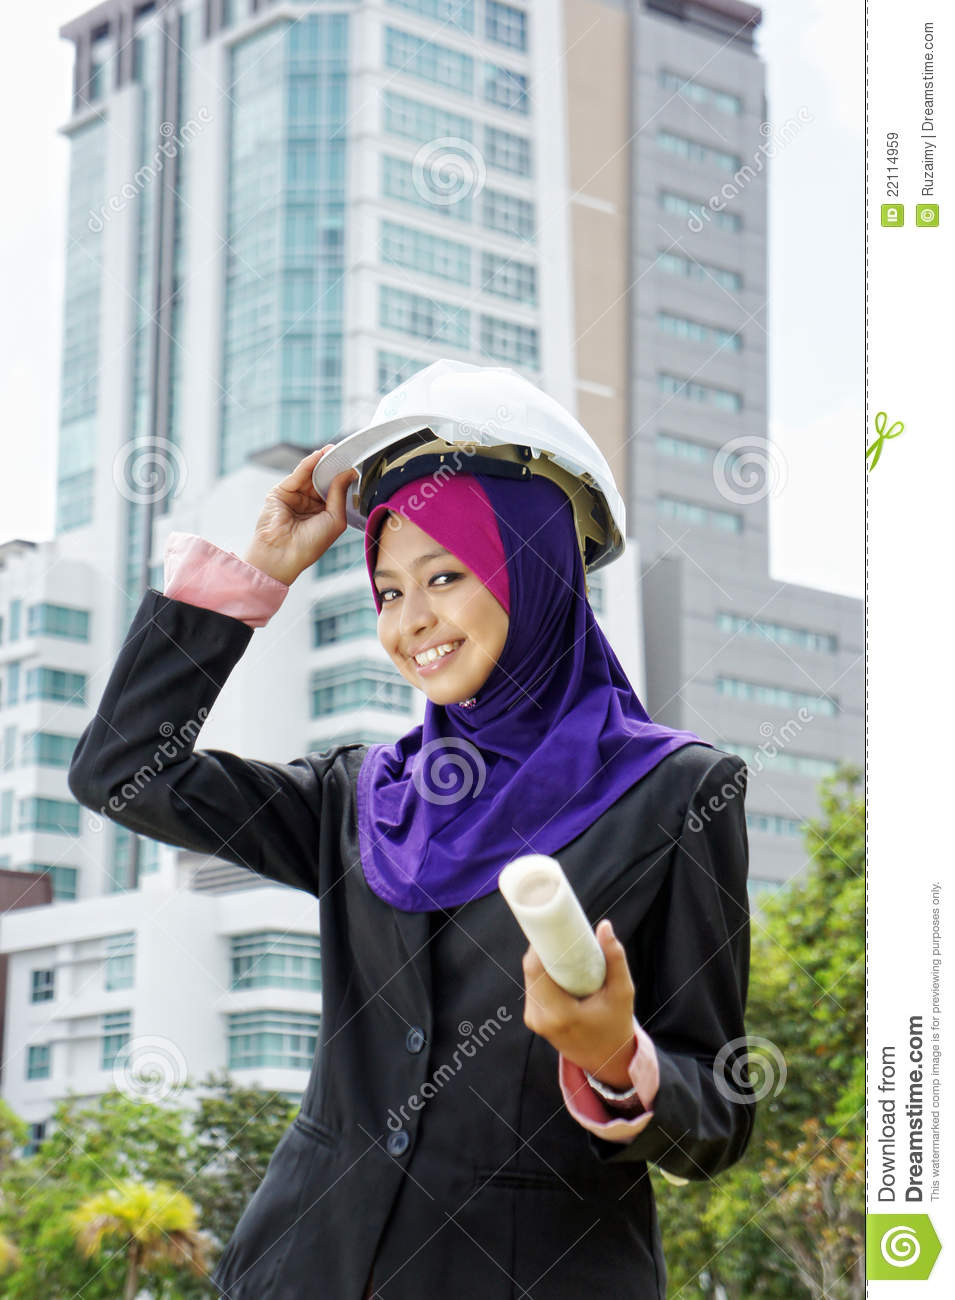 osgood muslim women dating site Singlemuslimcom the world's leading islamic muslim singles, marriage and shaadi introduction service over 2 million members online register for free.